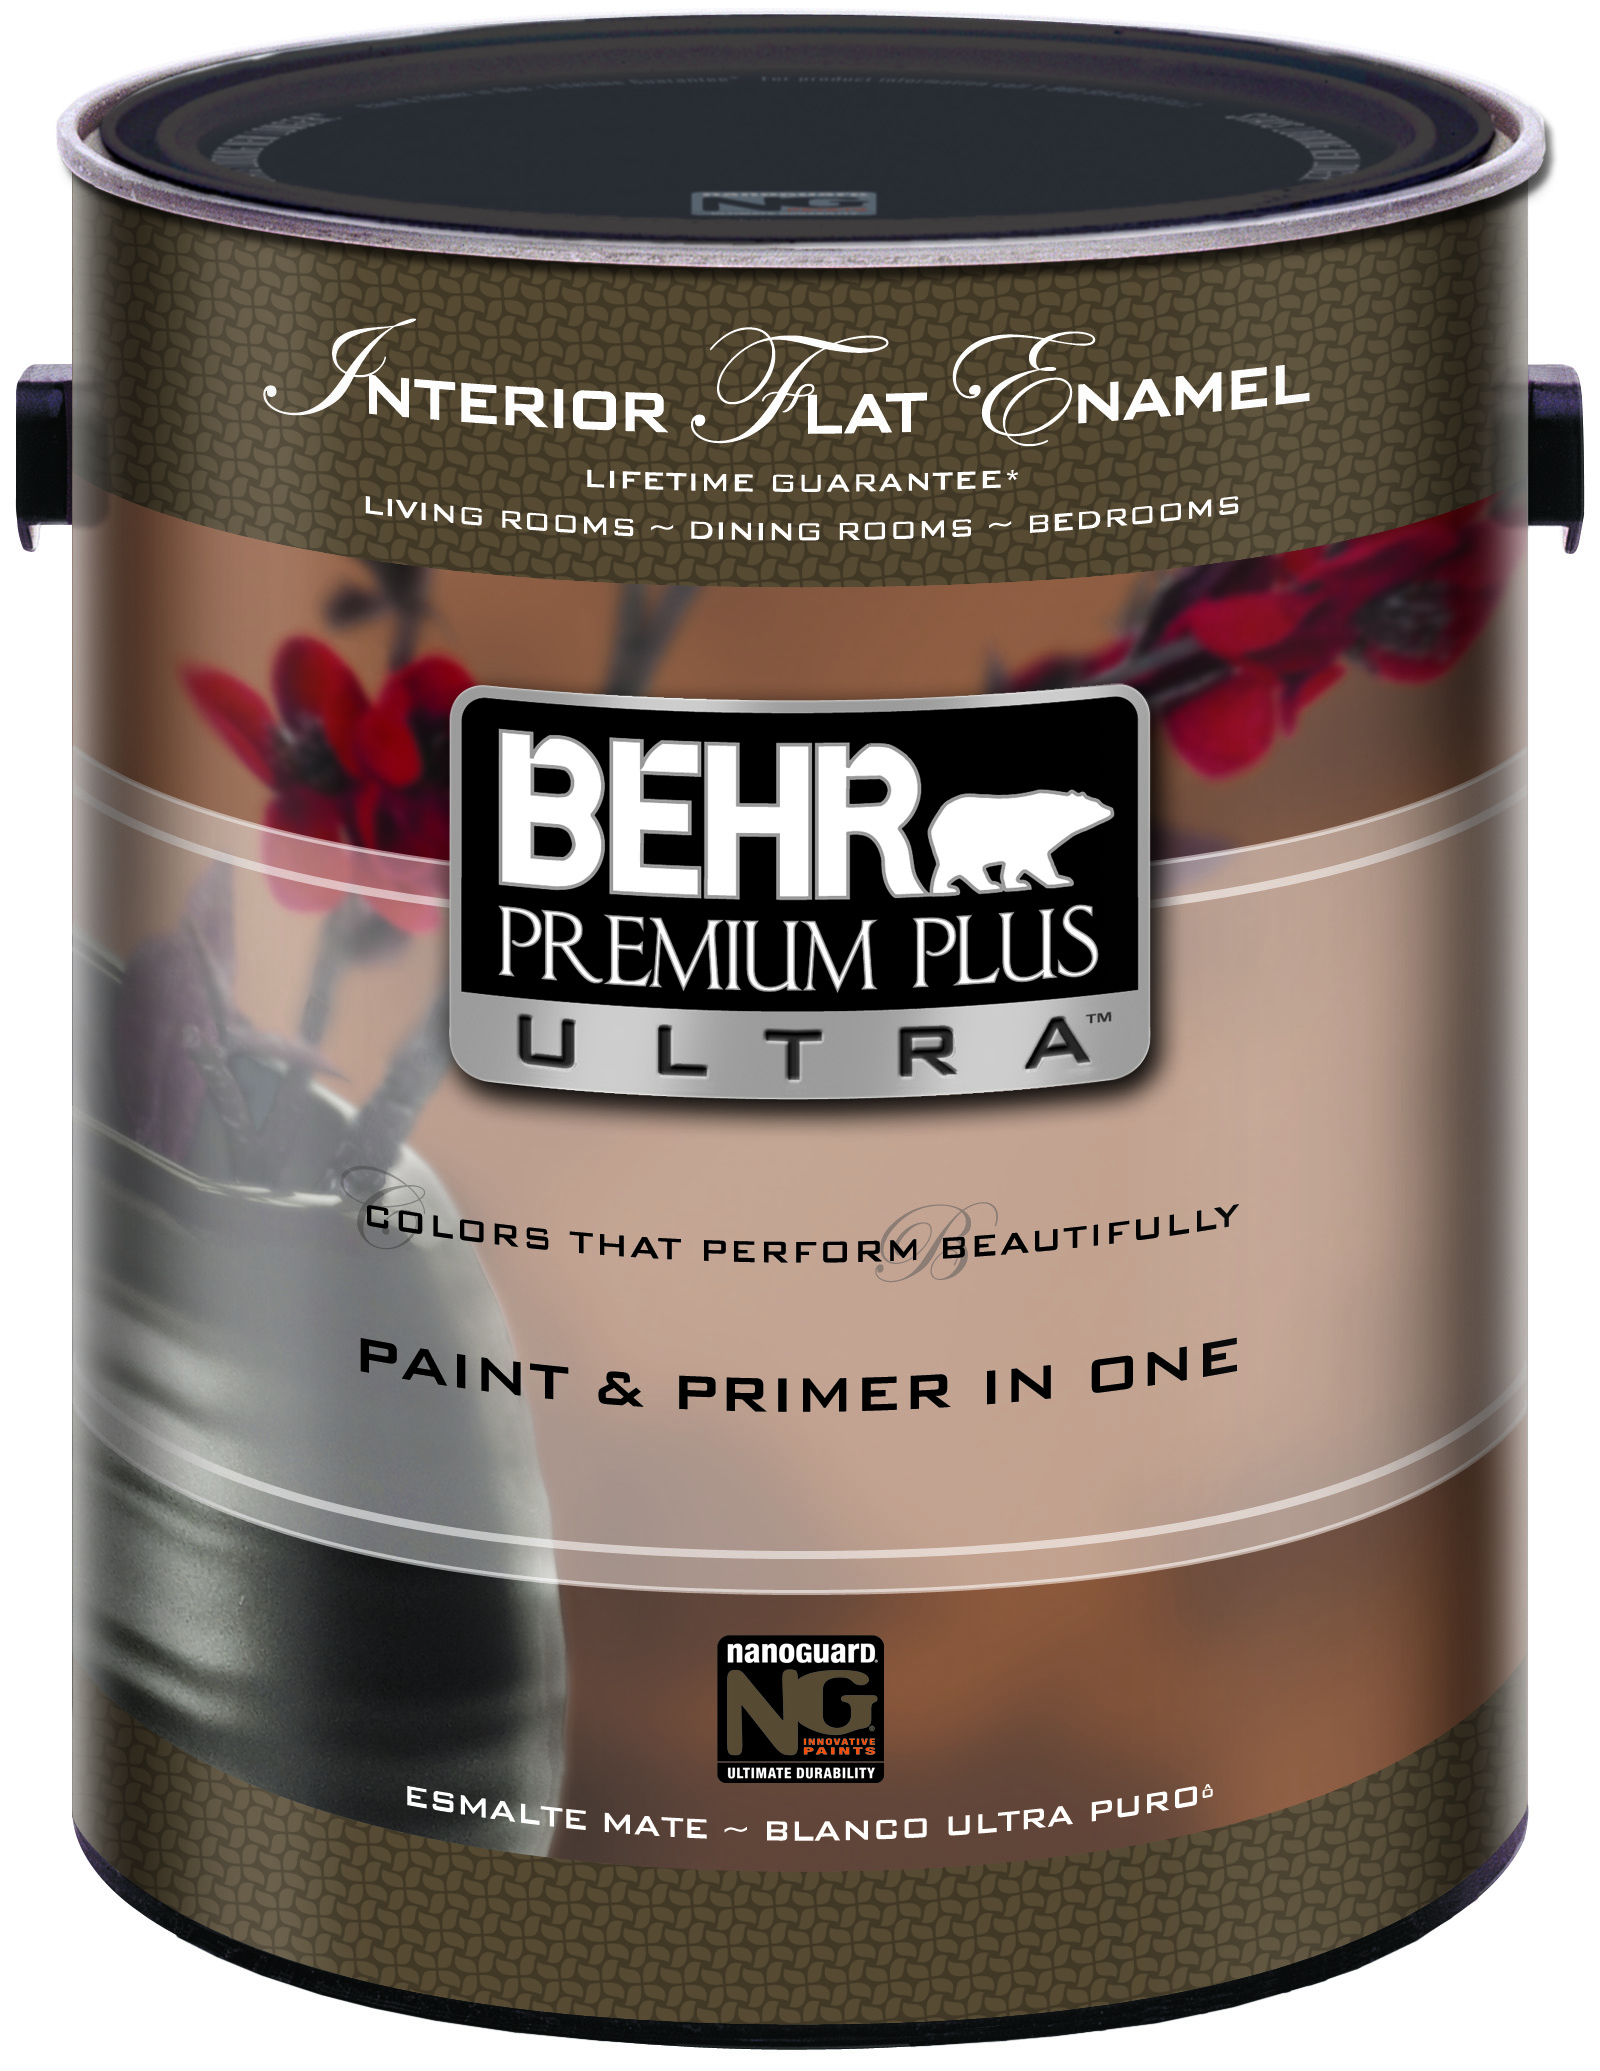 Behr Paints Introduces A Colorful New Way To Paint And Prime All In One With Behr Premium Plus